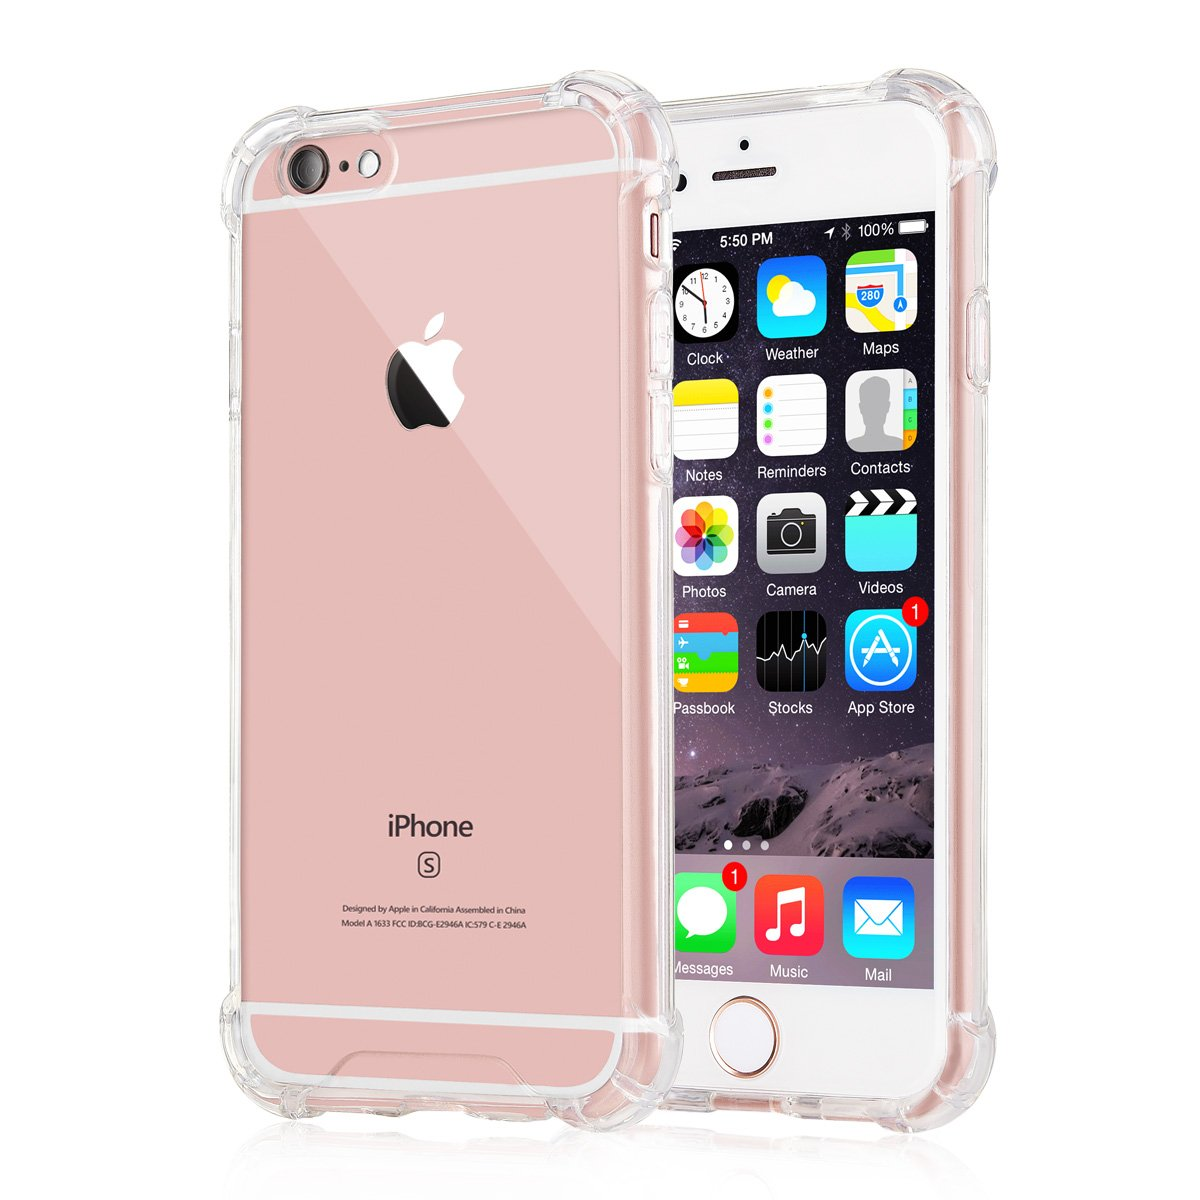 Funda para iphone 6/6S plus transparente [Importada]